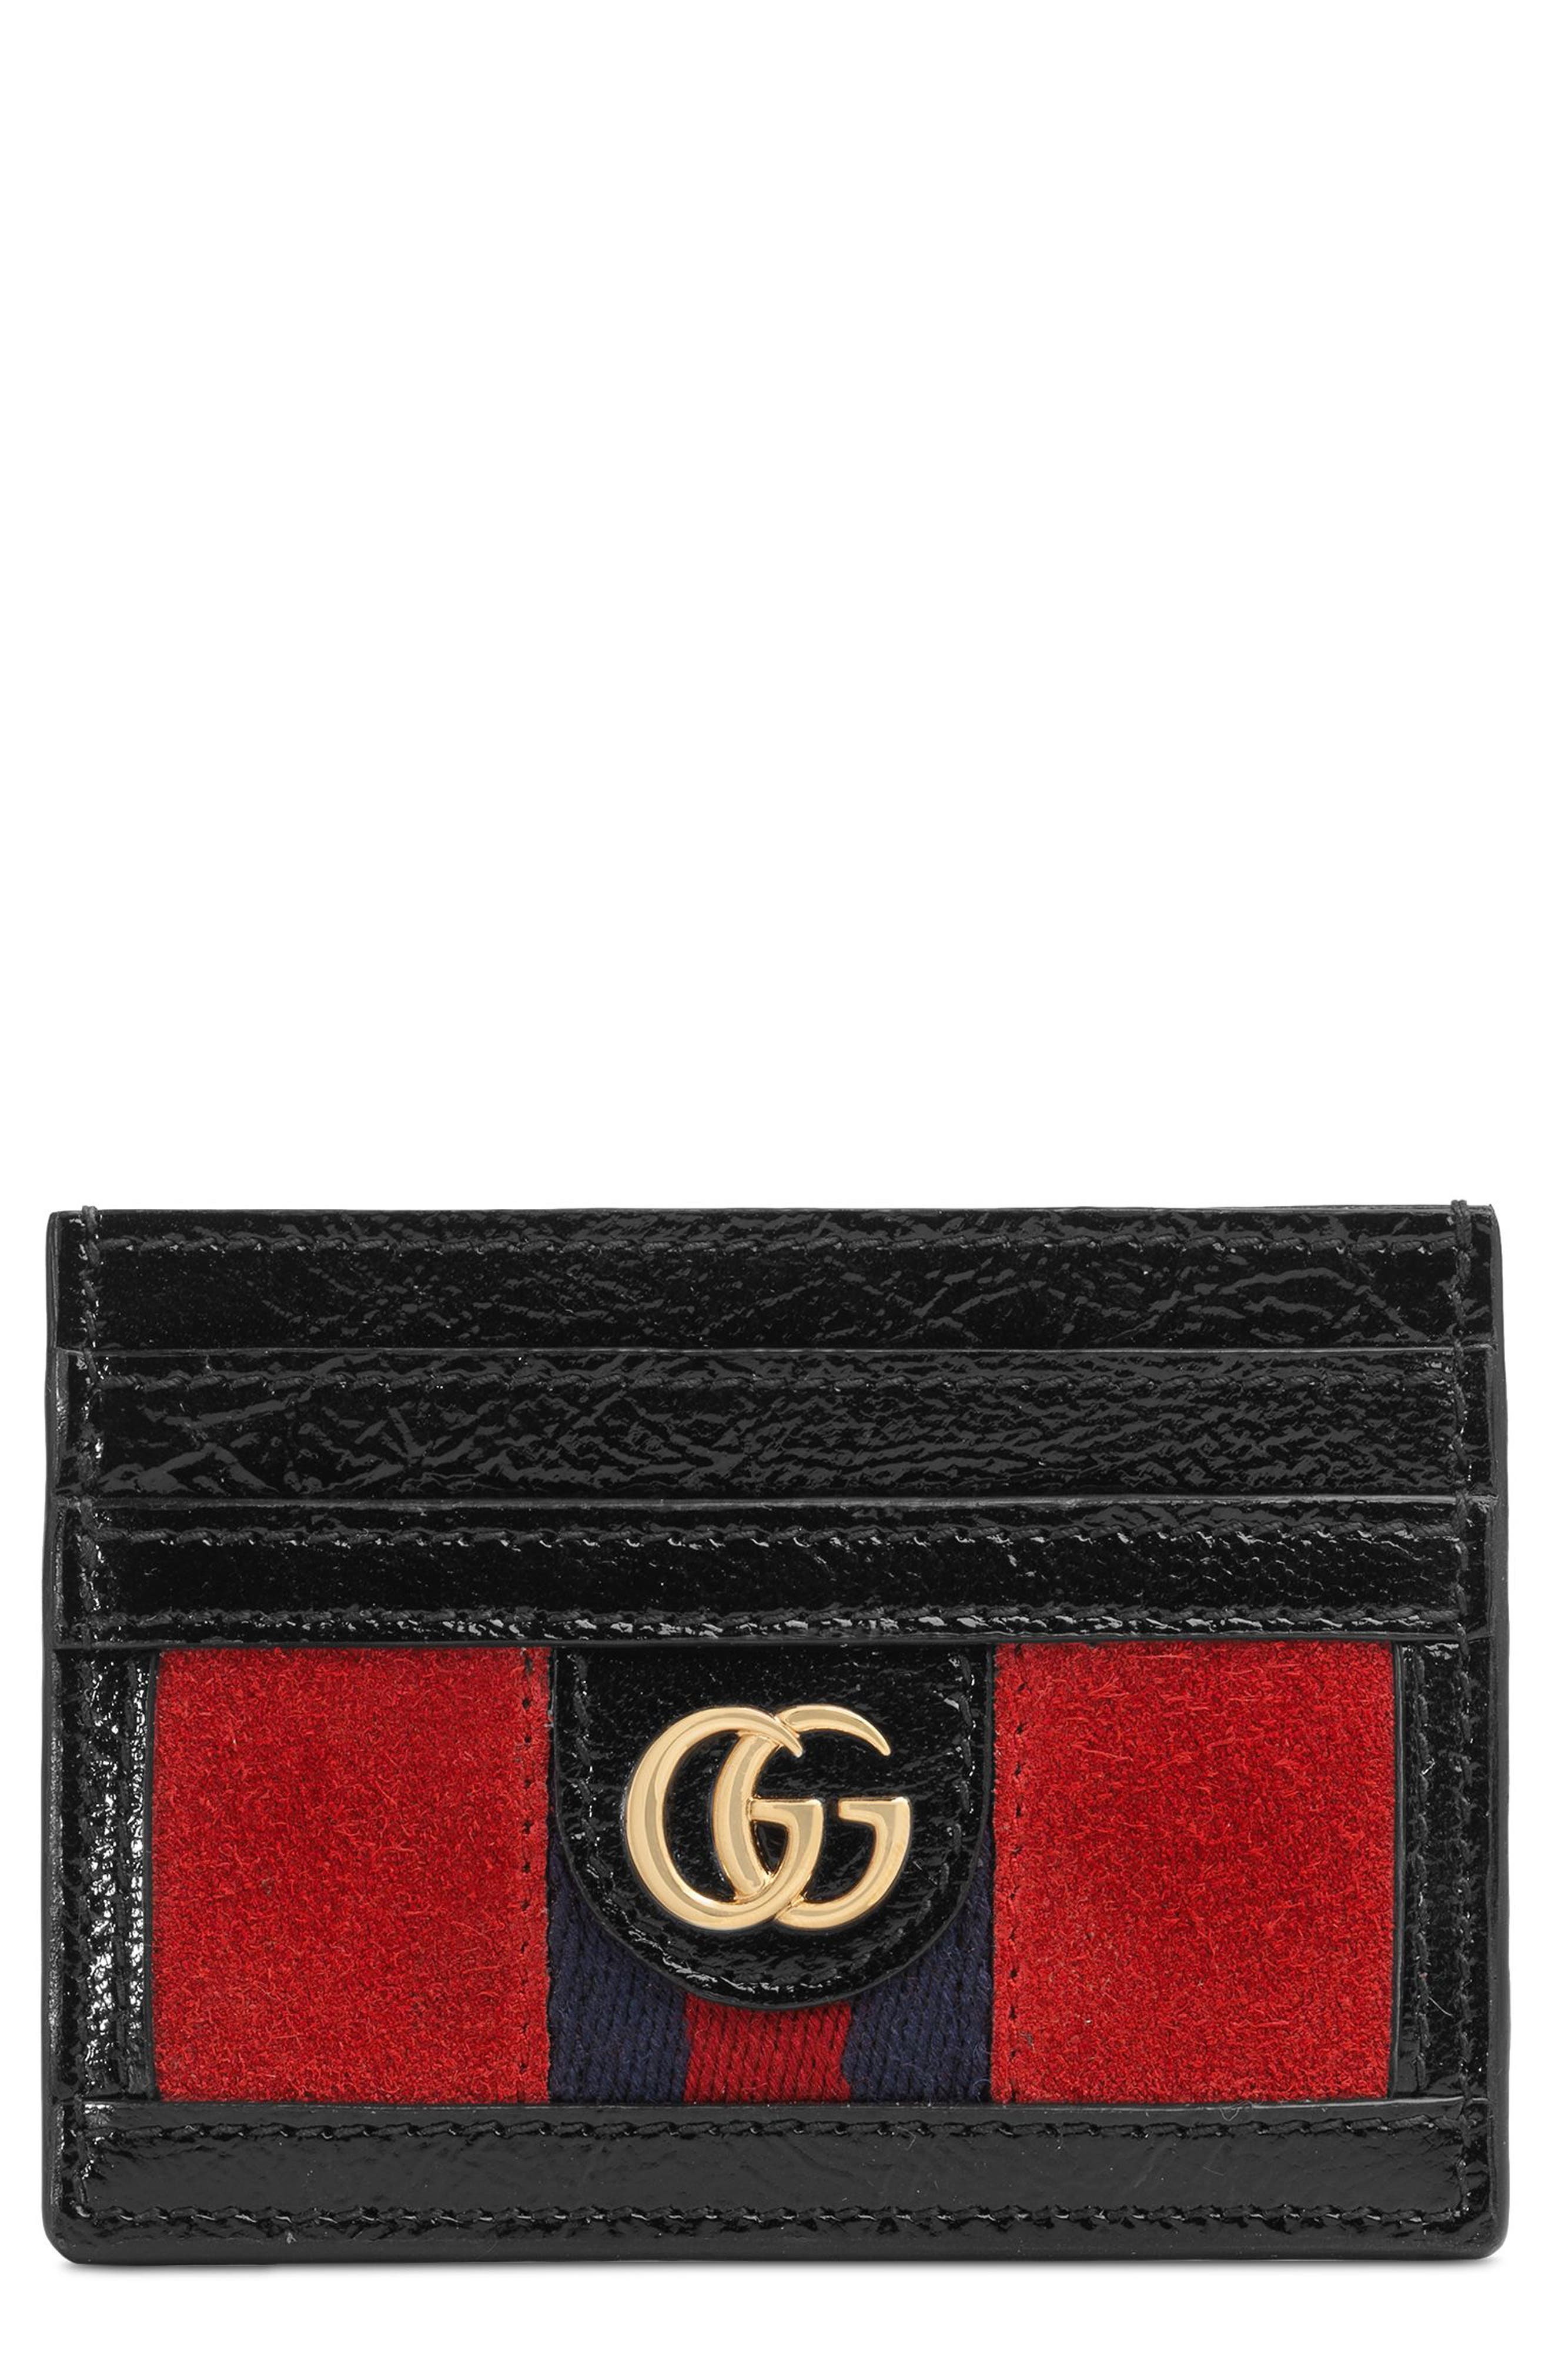 Ophidia Suede Card Case,                             Main thumbnail 1, color,                             Hibiscus Red/ Nero/ Blue